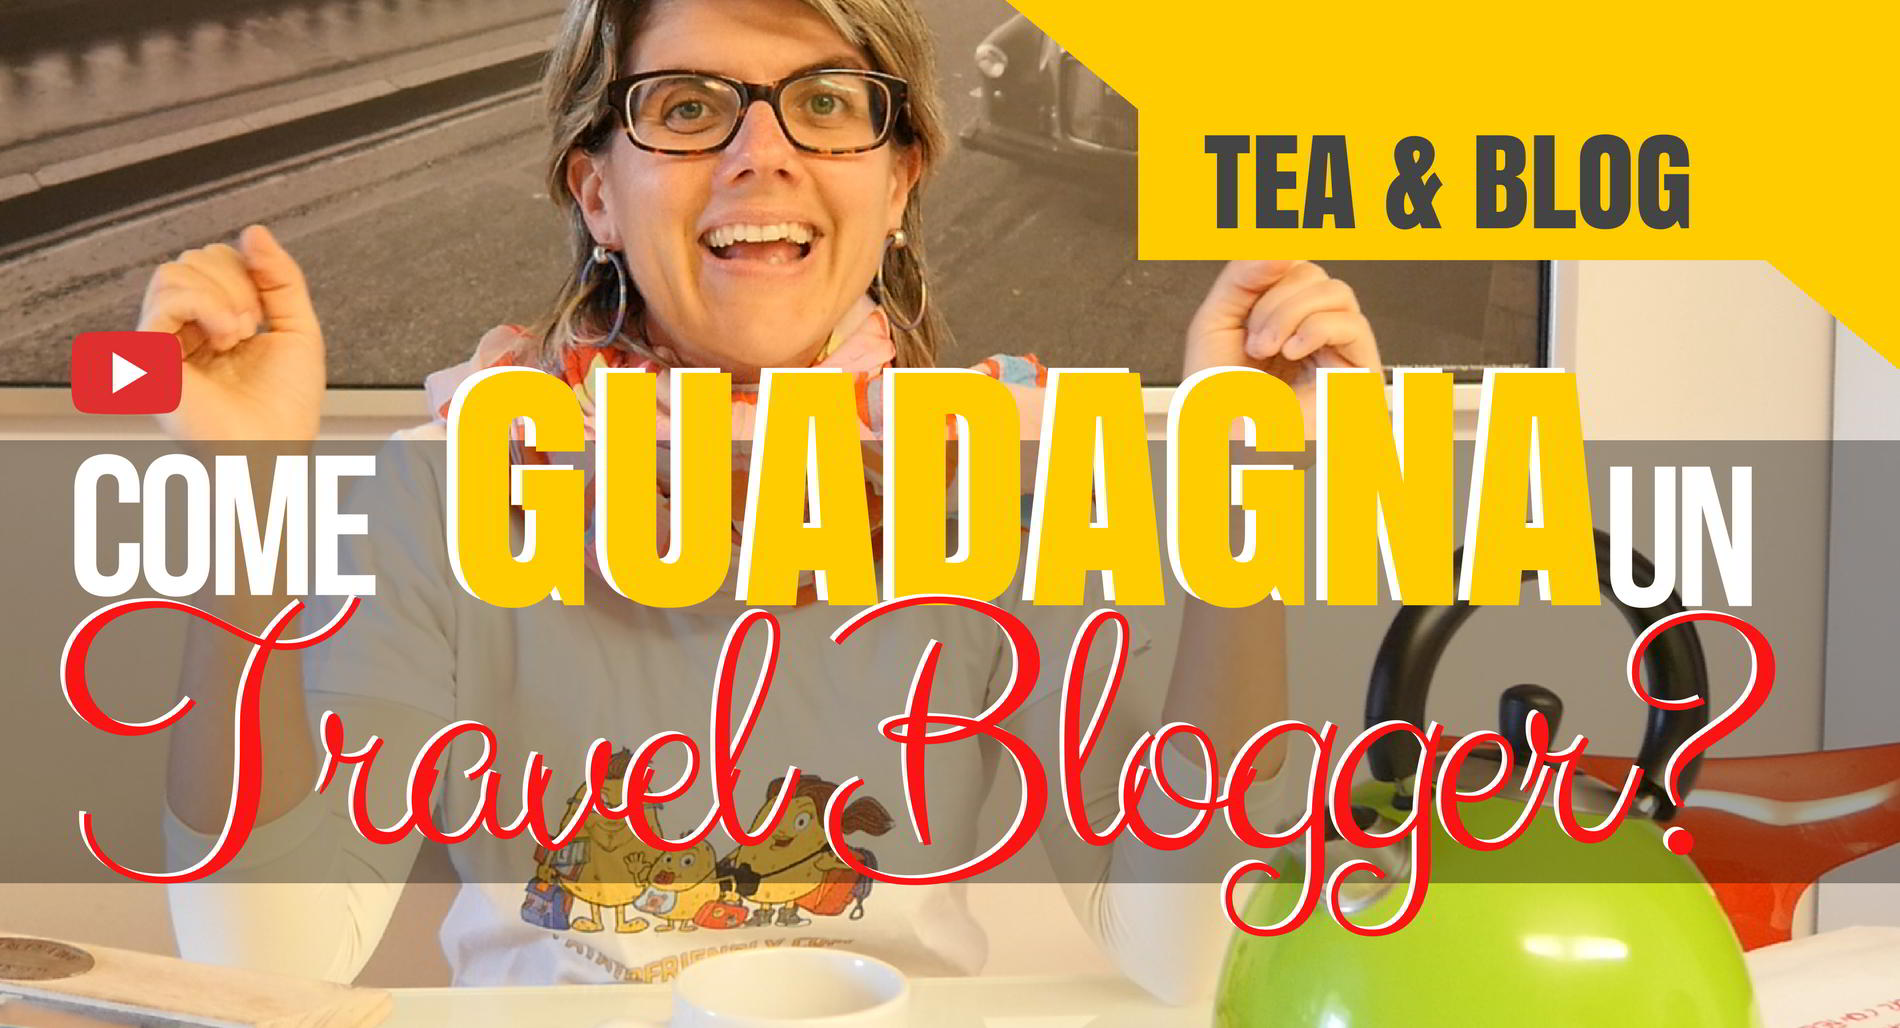 Come guadagna un travel blogger- Tea&Blog